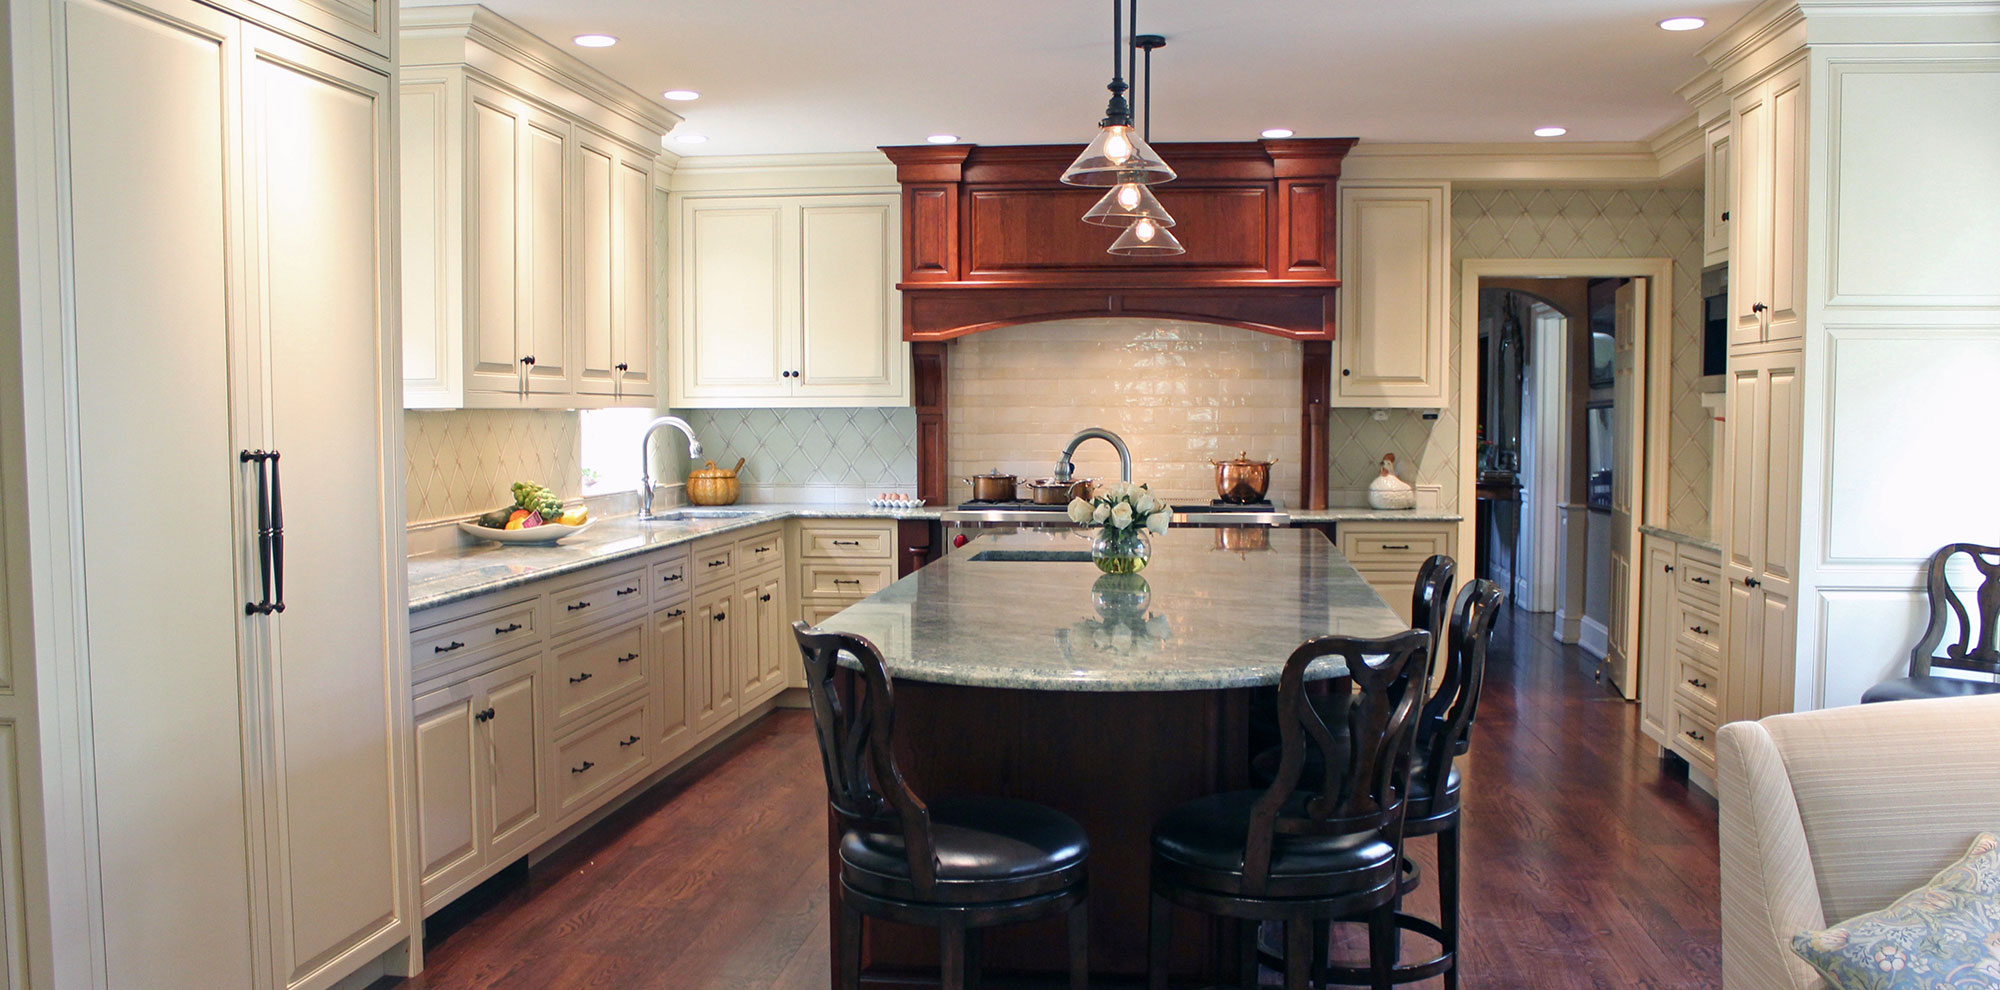 Home | Paradise Custom Kitchens